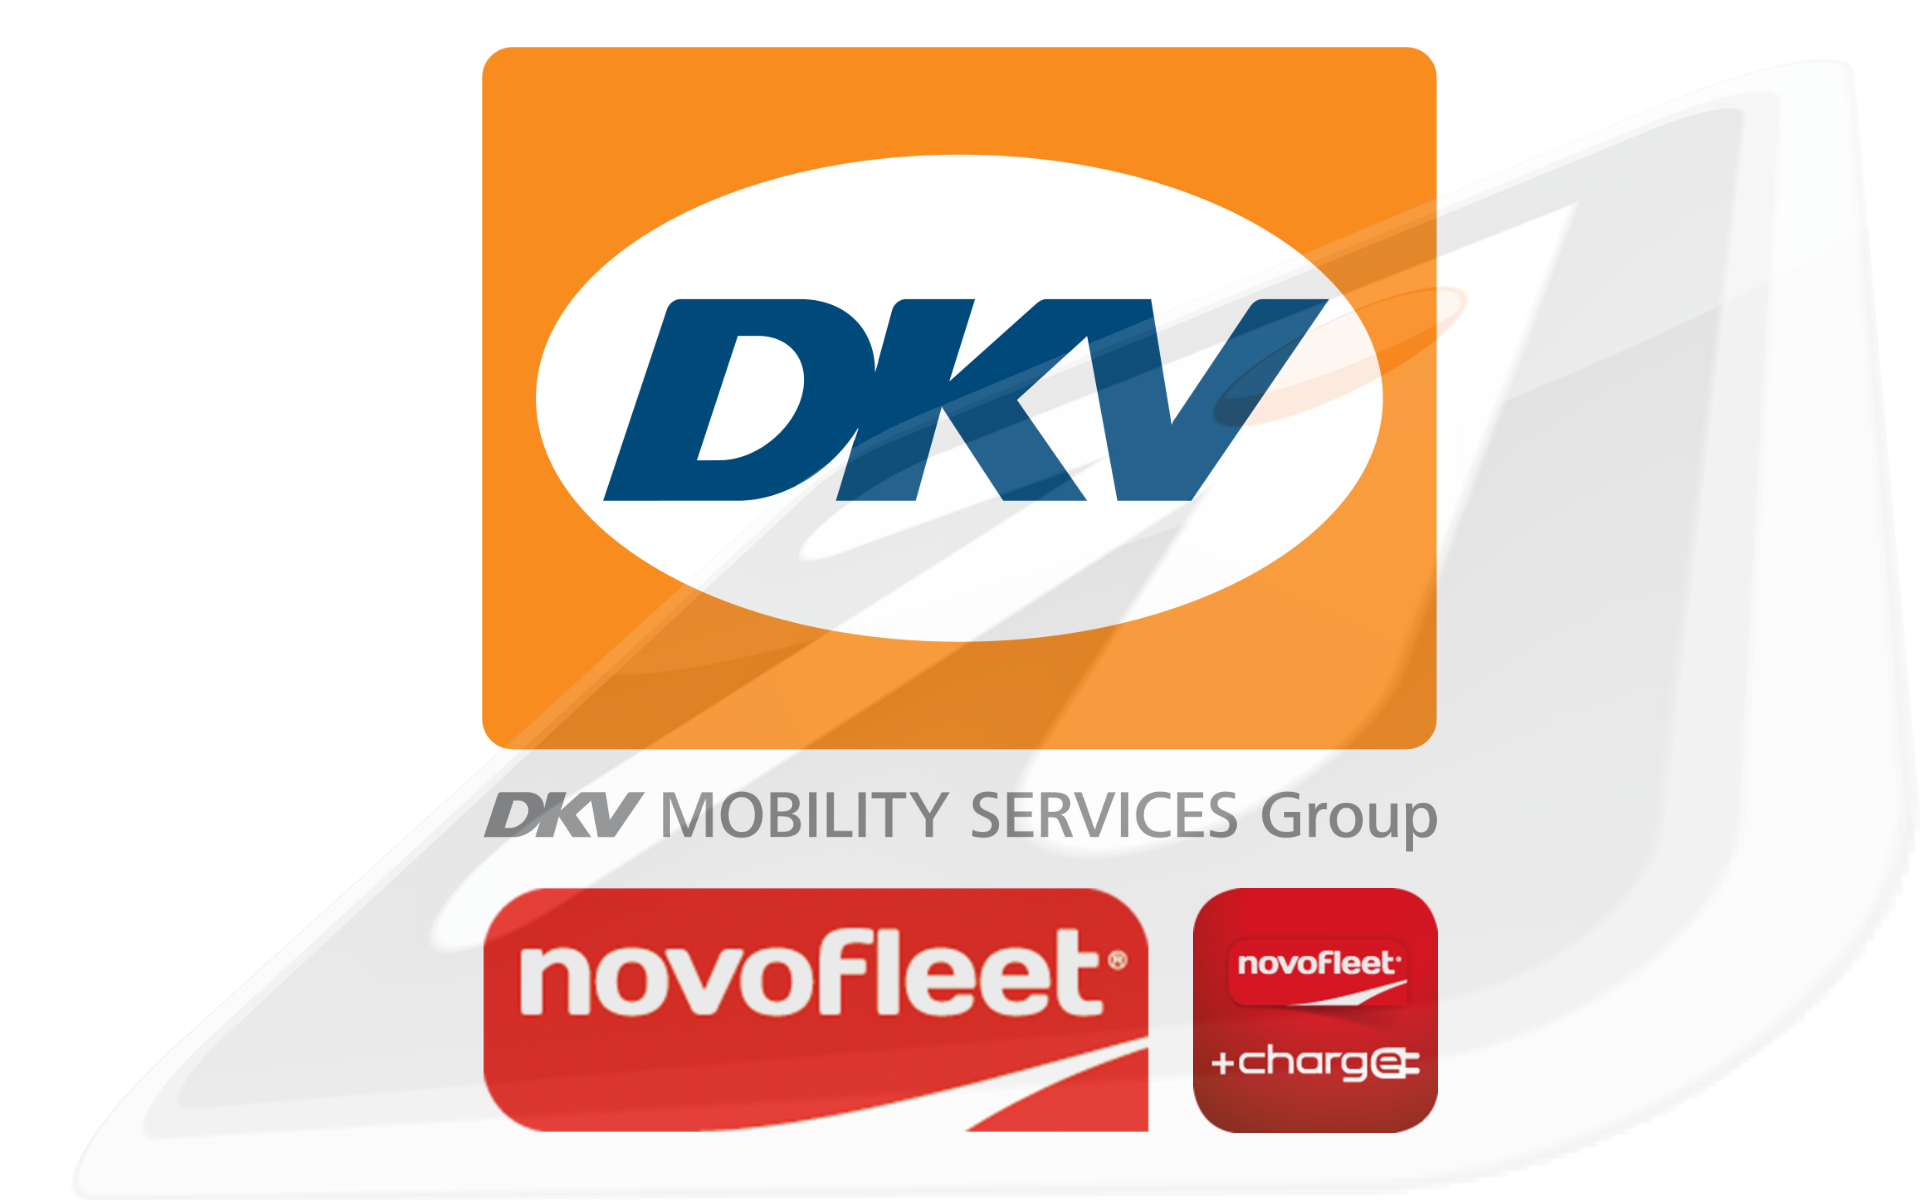 DKV Mobility Services - novofleet - novofleet plus charge - Media & IT Maue